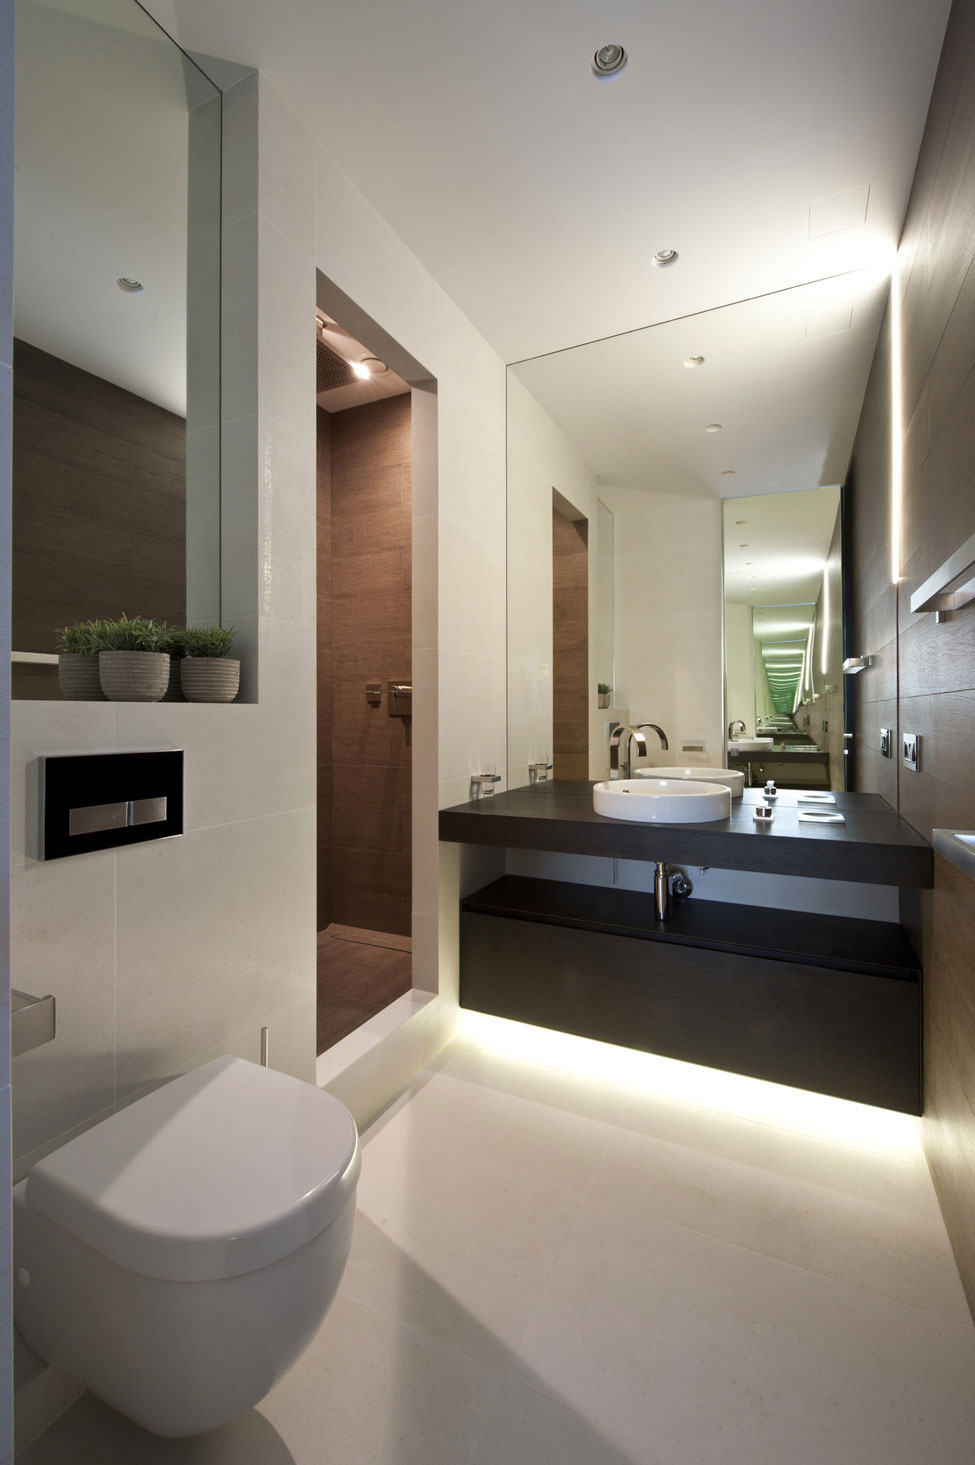 Bathroom, Sink, Mirror, Apartment in Zelenograd, Russia by Alexandra Fedorova